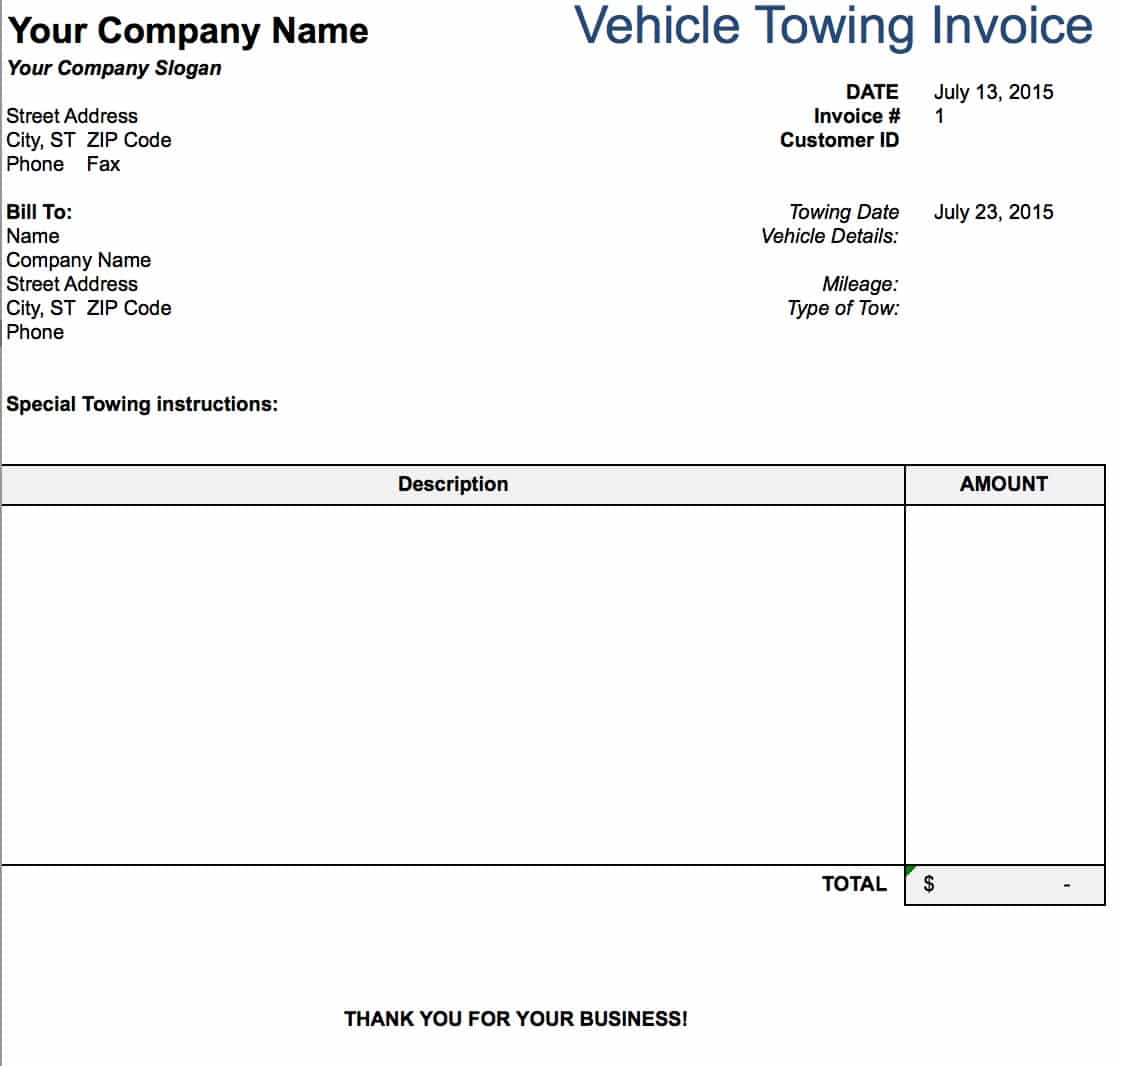 Free Tow Service Invoice Template Excel PDF Word Doc - Free invoices download for service business